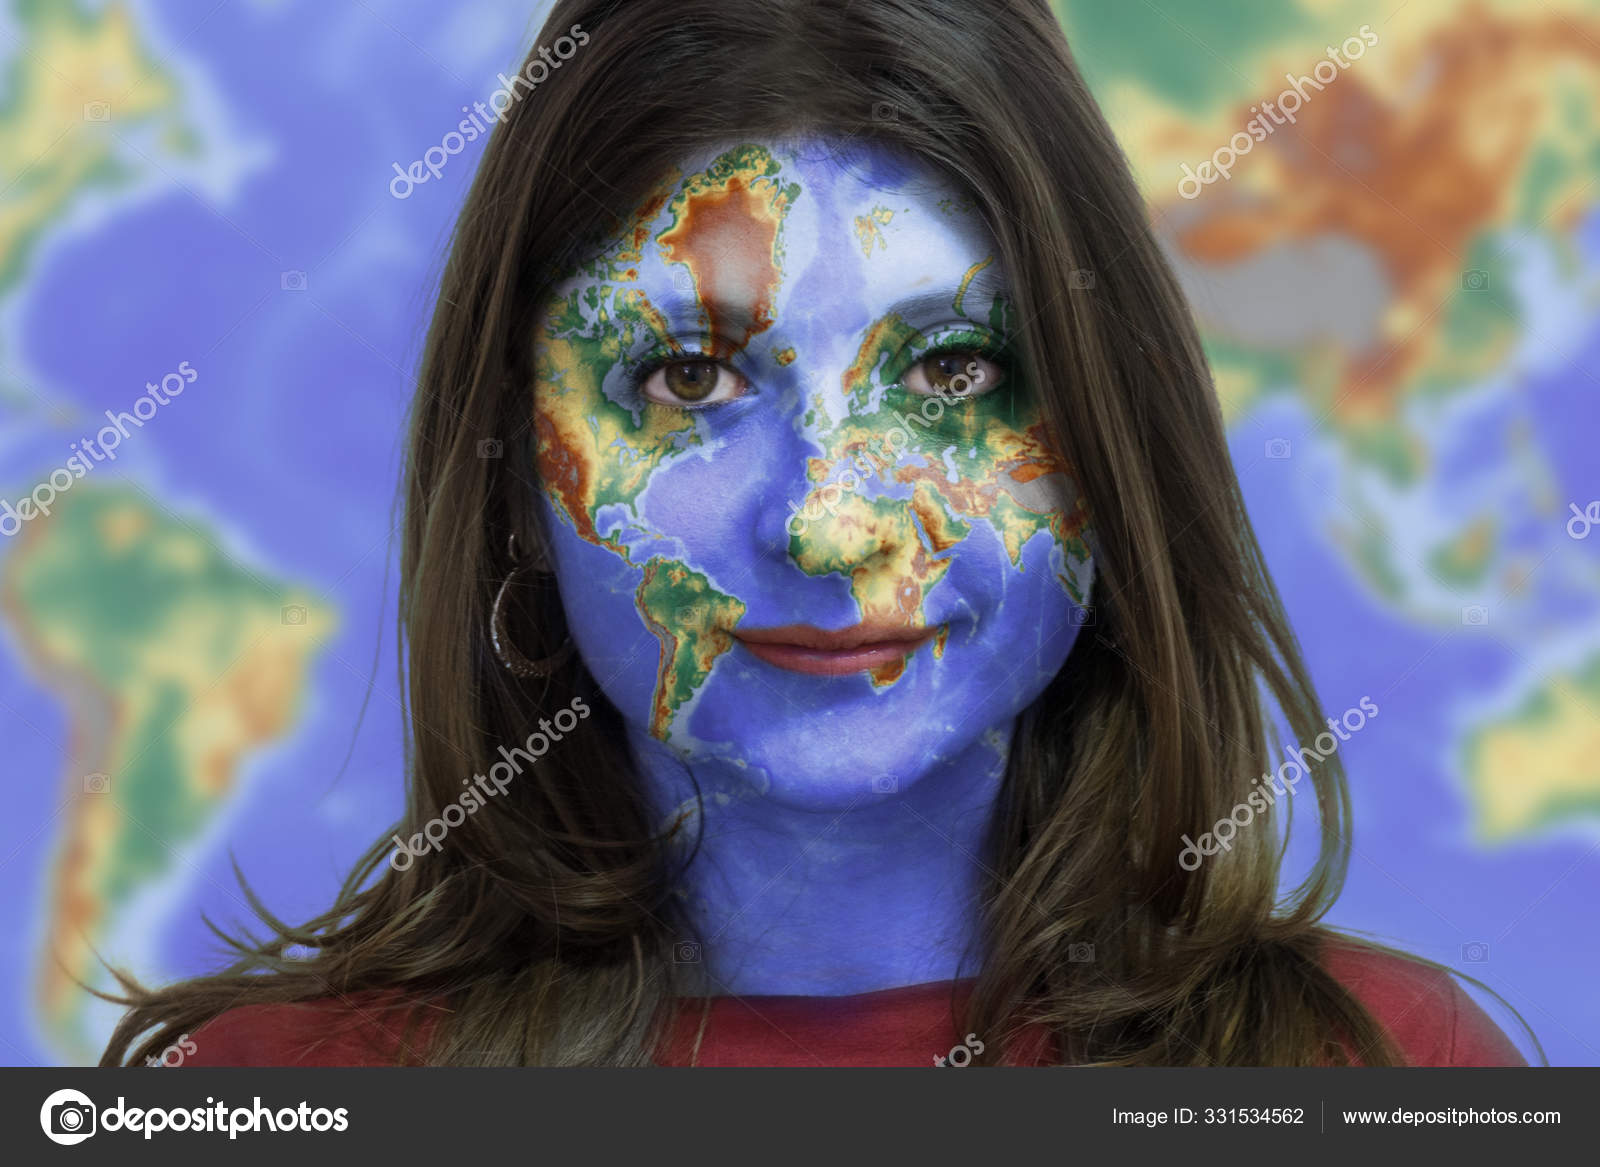 Girl With World Map On Her Face Stock Photo C Supercic 331534562